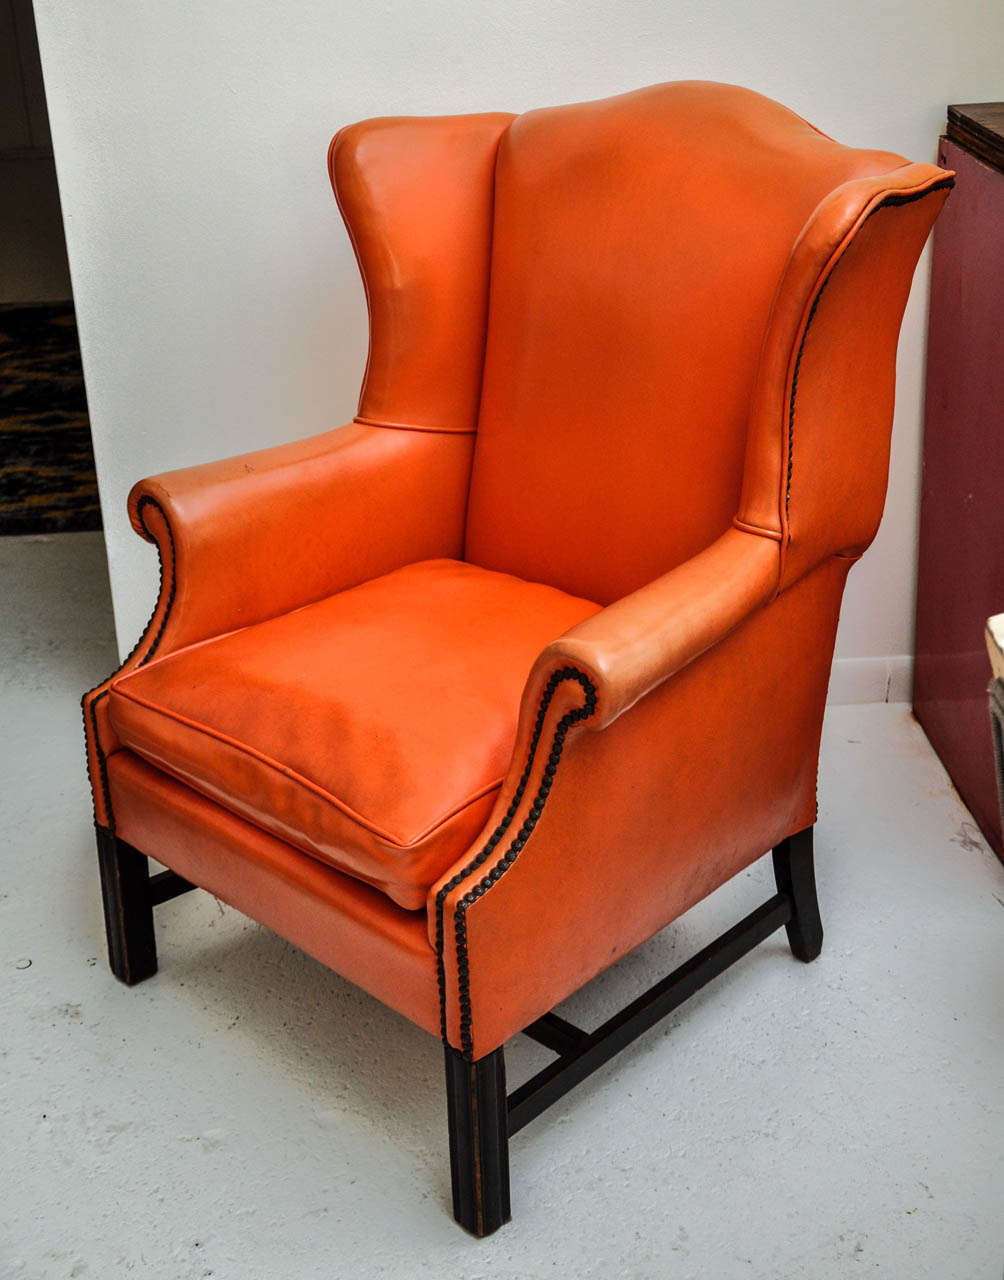 Vintage Orange Leather Wing Chair With Distressed Espresso Wood Base And  Antique Brass Nailhead Trim